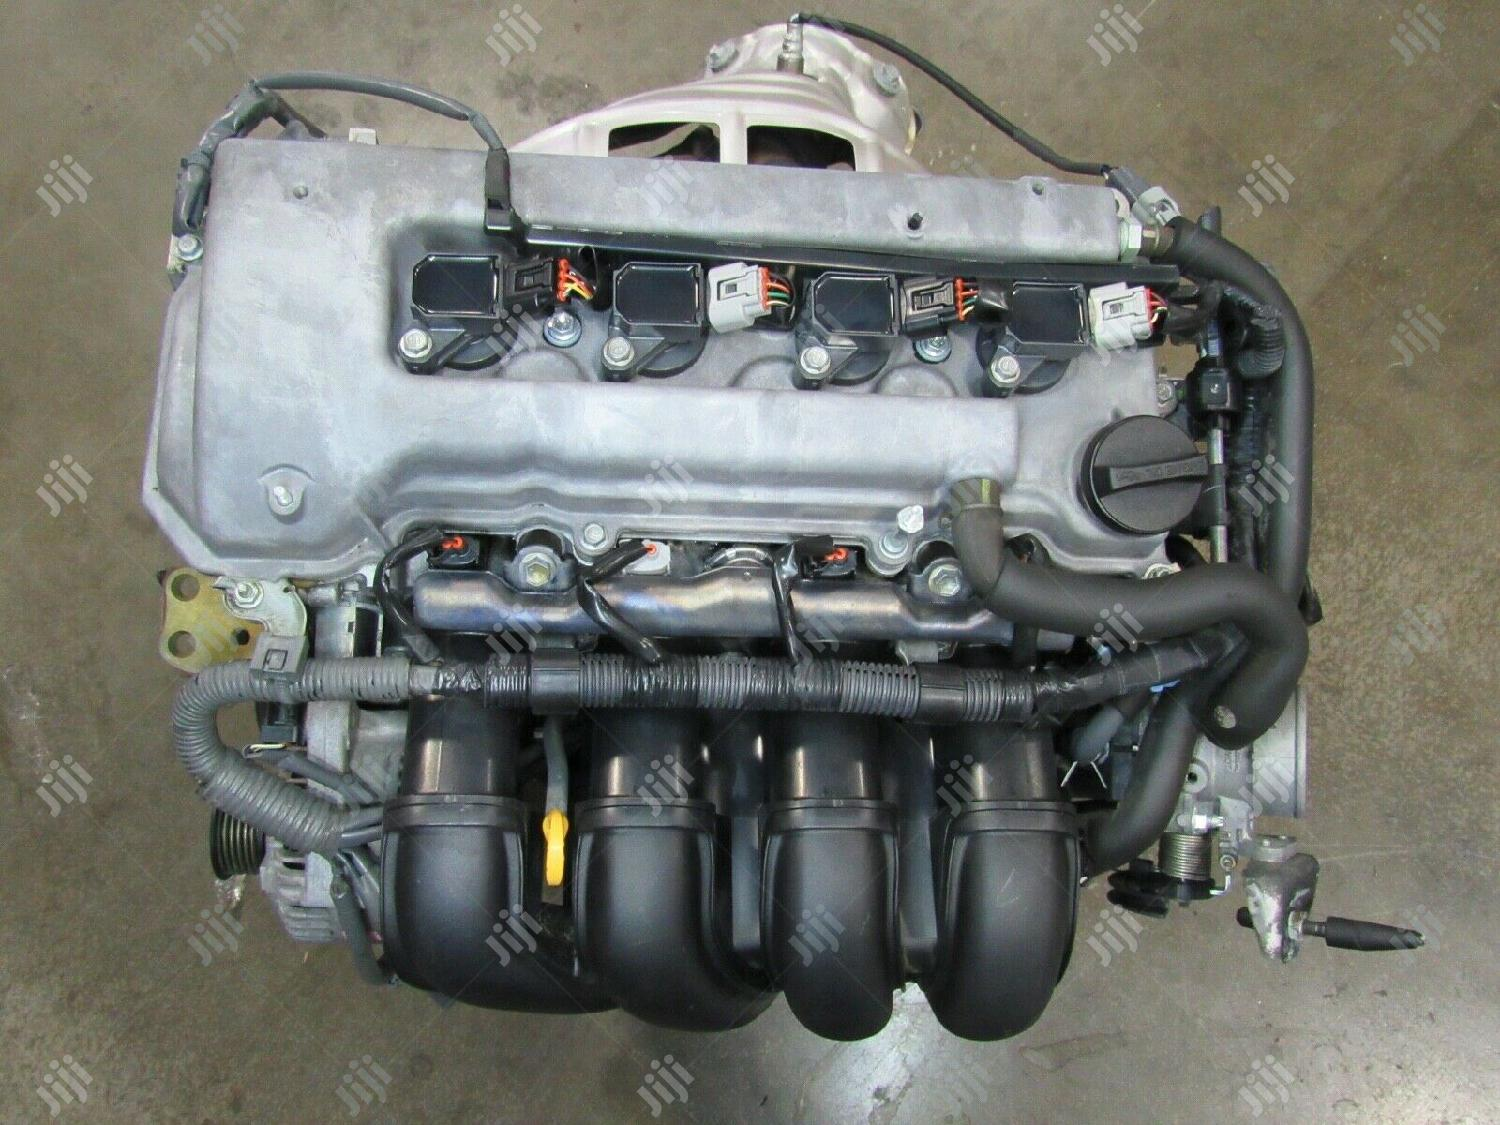 Toyota Corolla 1zz 2000-2005 Engine | Vehicle Parts & Accessories for sale in Mushin, Lagos State, Nigeria